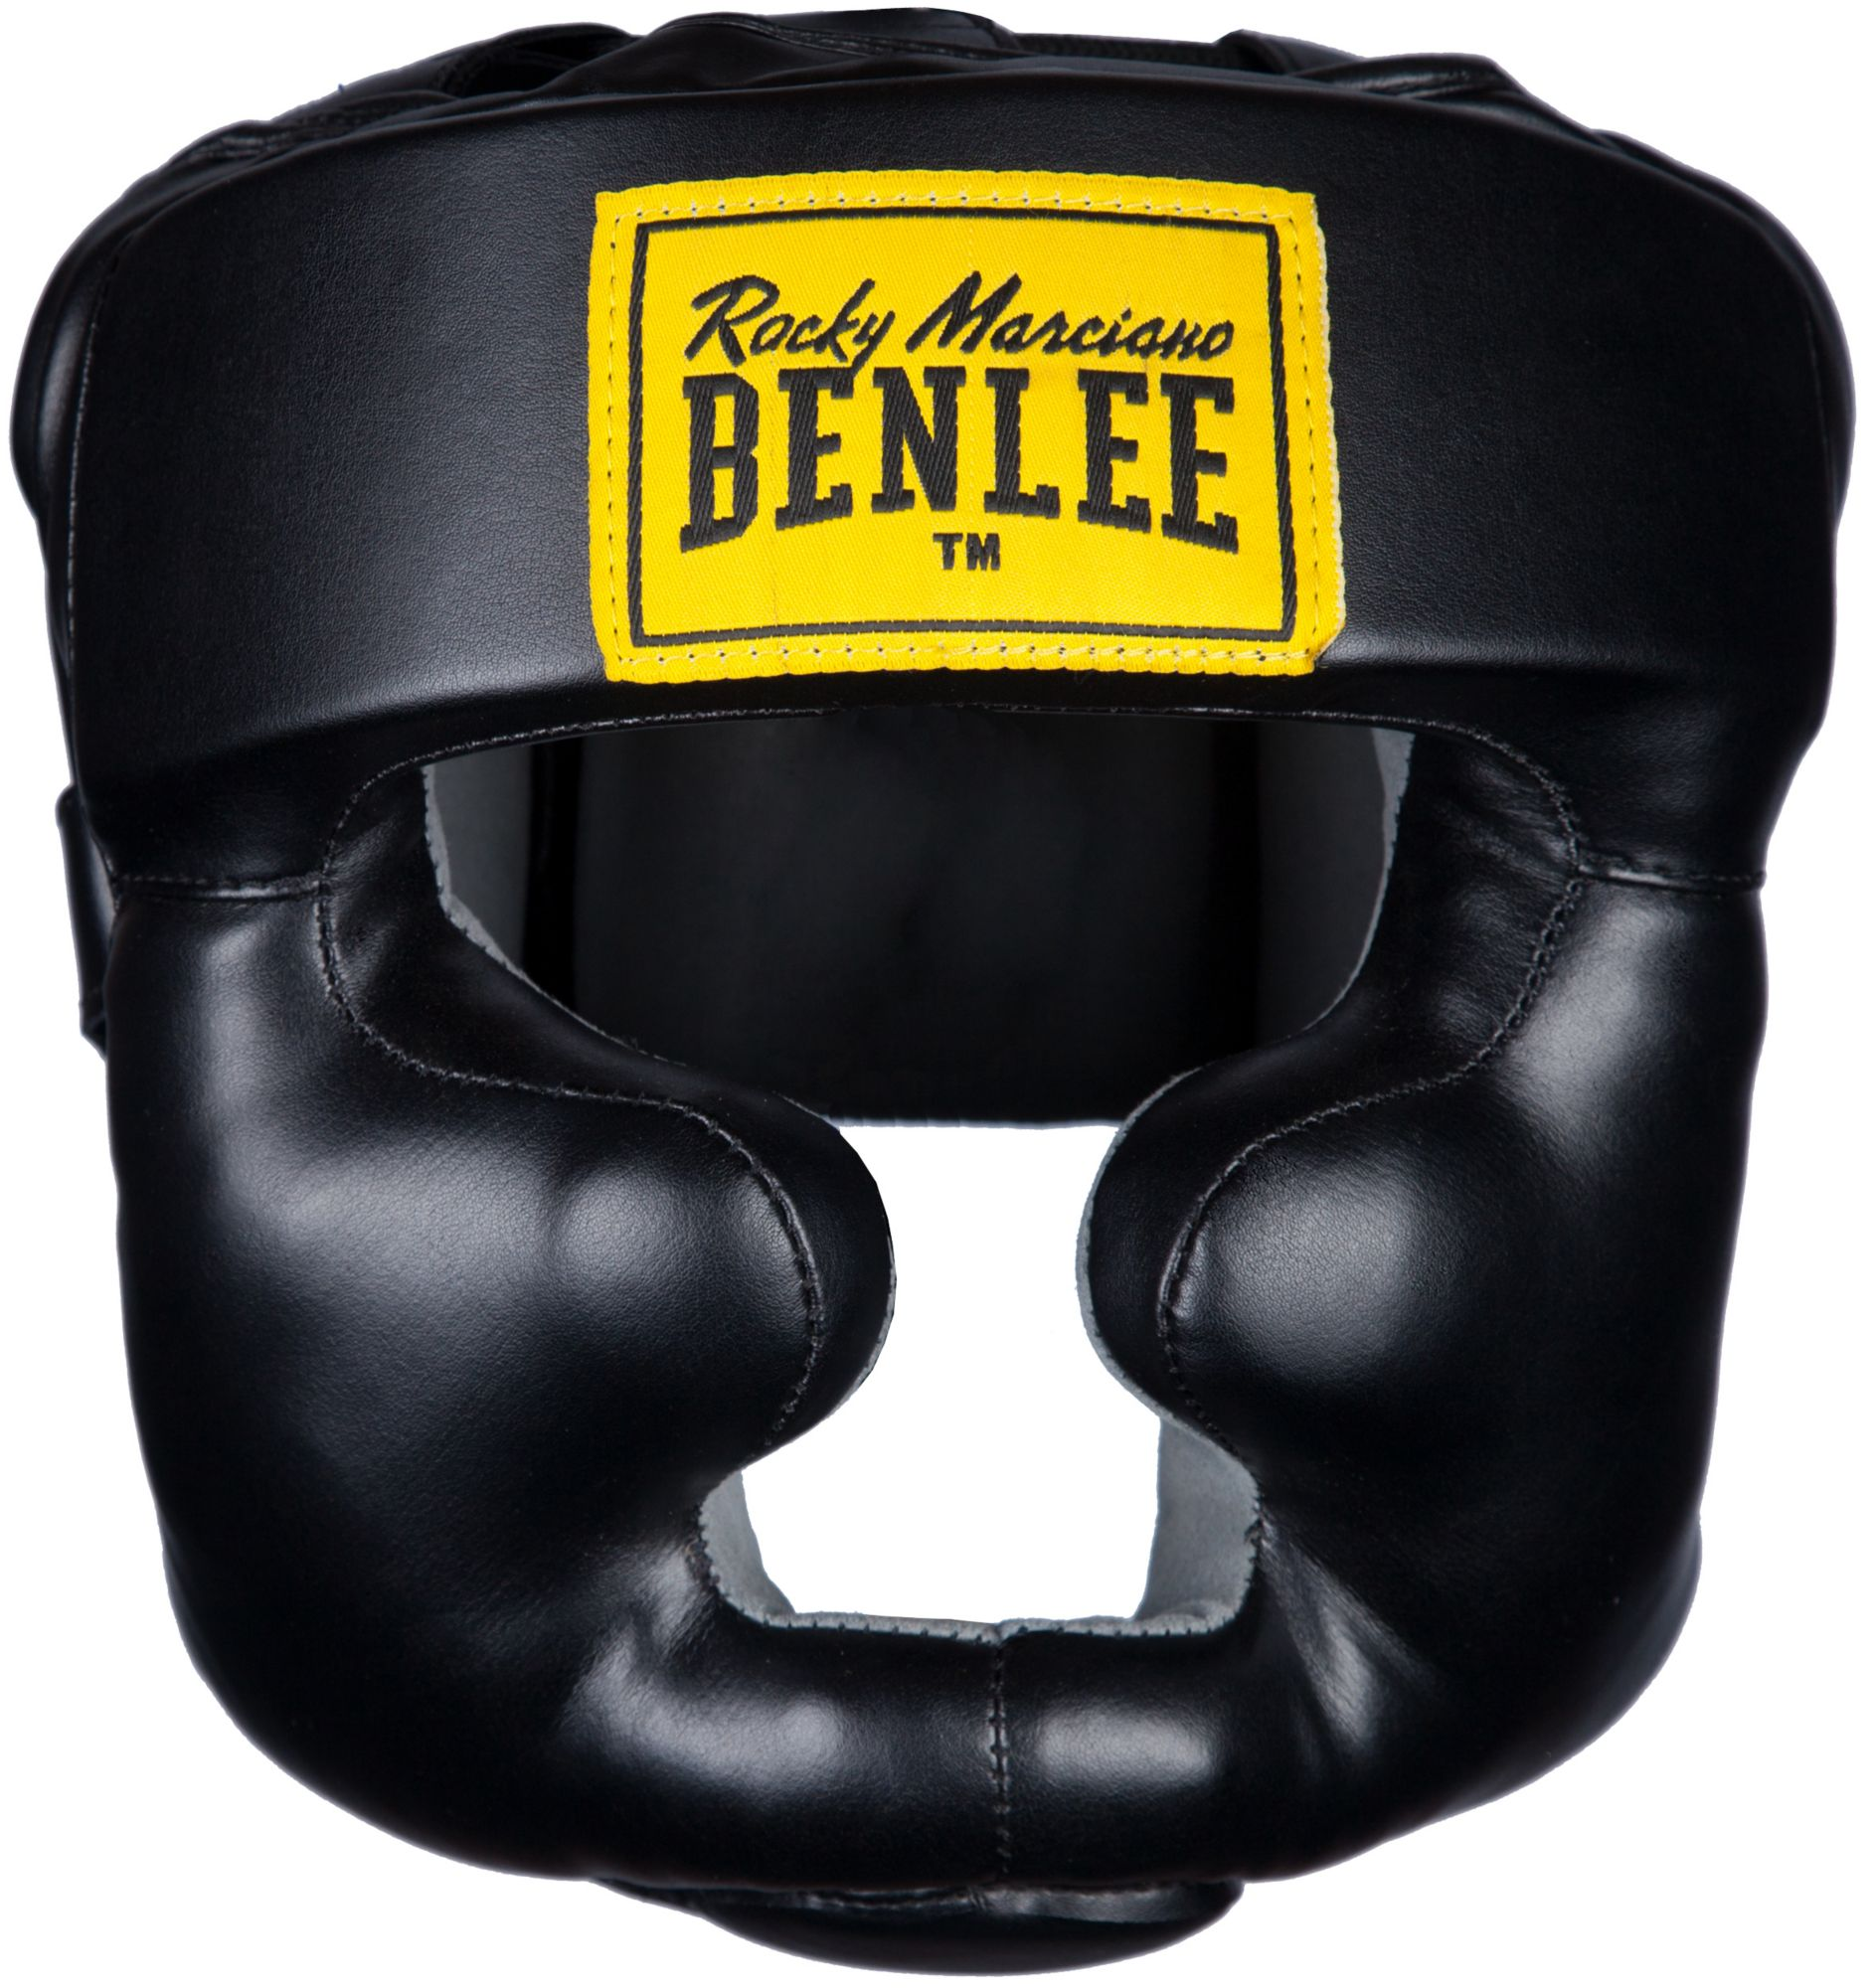 BENLEE ROCKY MARCIANO Benlee Rocky Marciano Benlee »FULL PROTECTION«